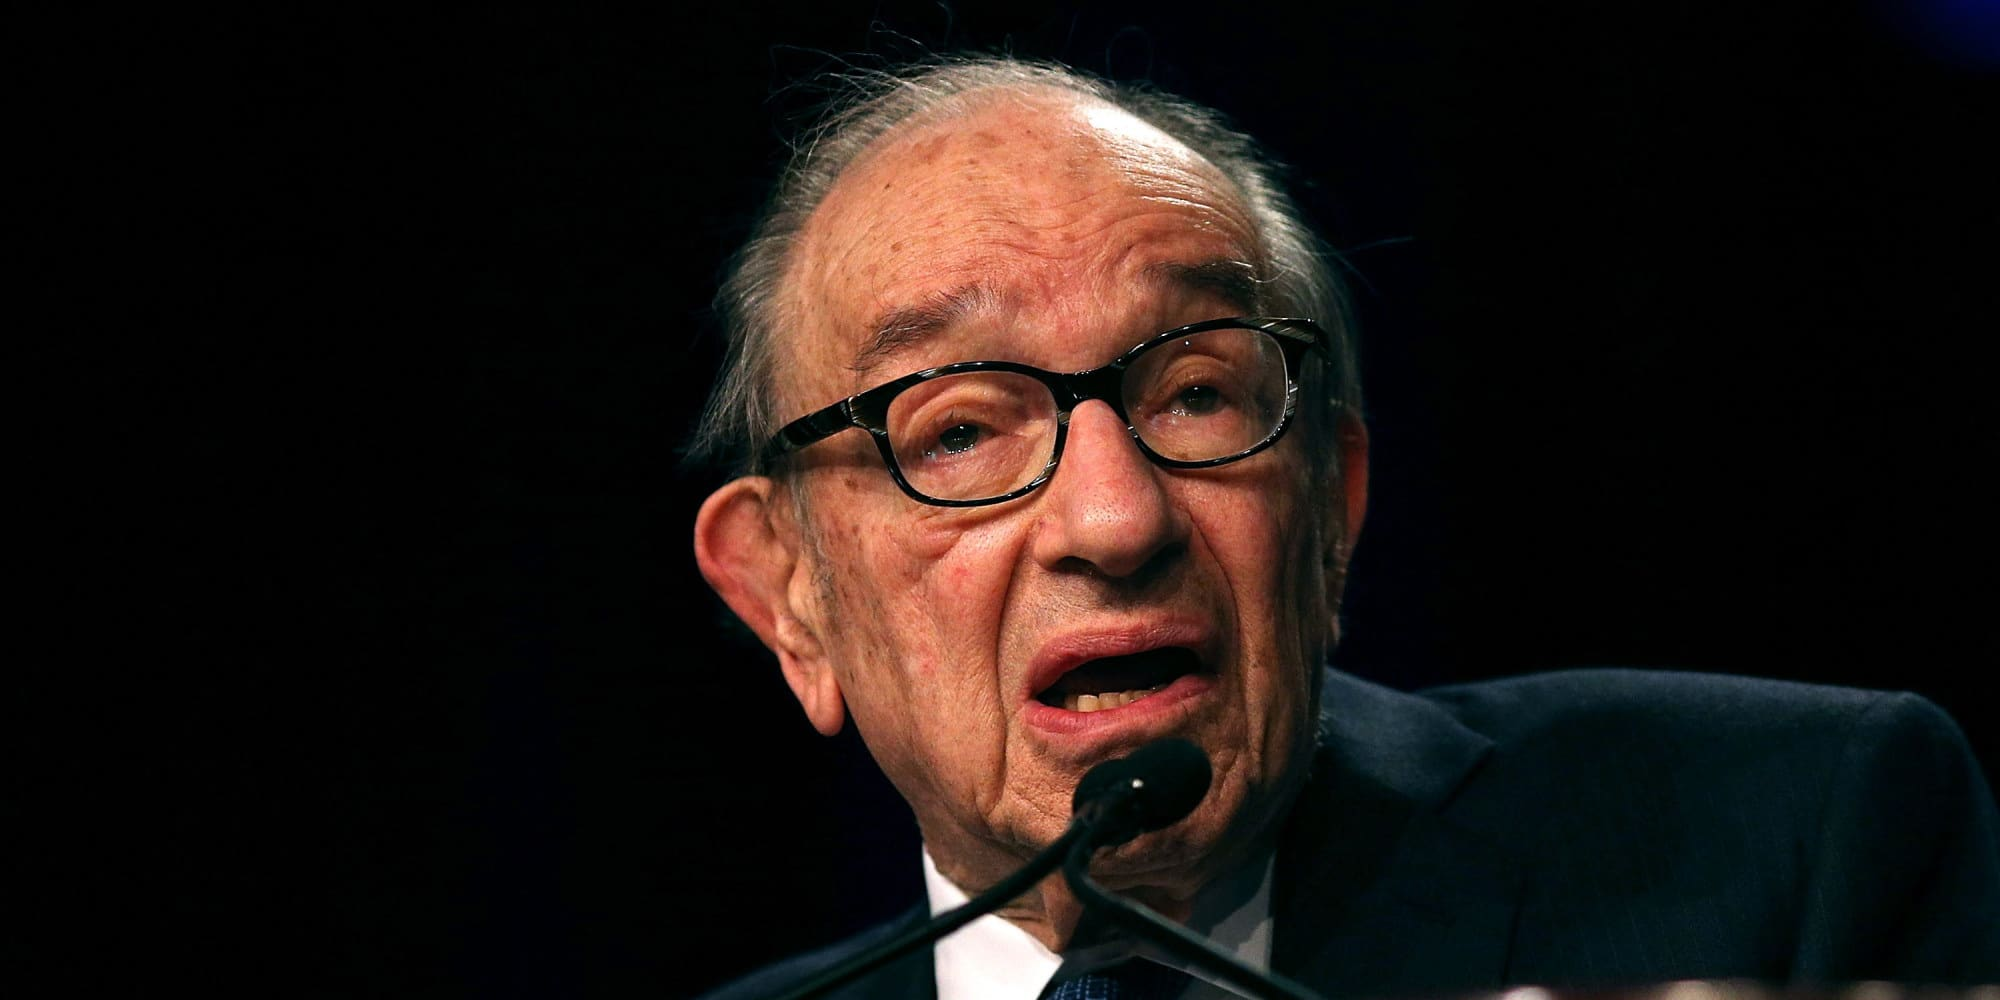 alan greenspan Alan greenspan news and opinion in this interview, alan taylor discusses his findings and suggests ways to safeguard the financial system politics.